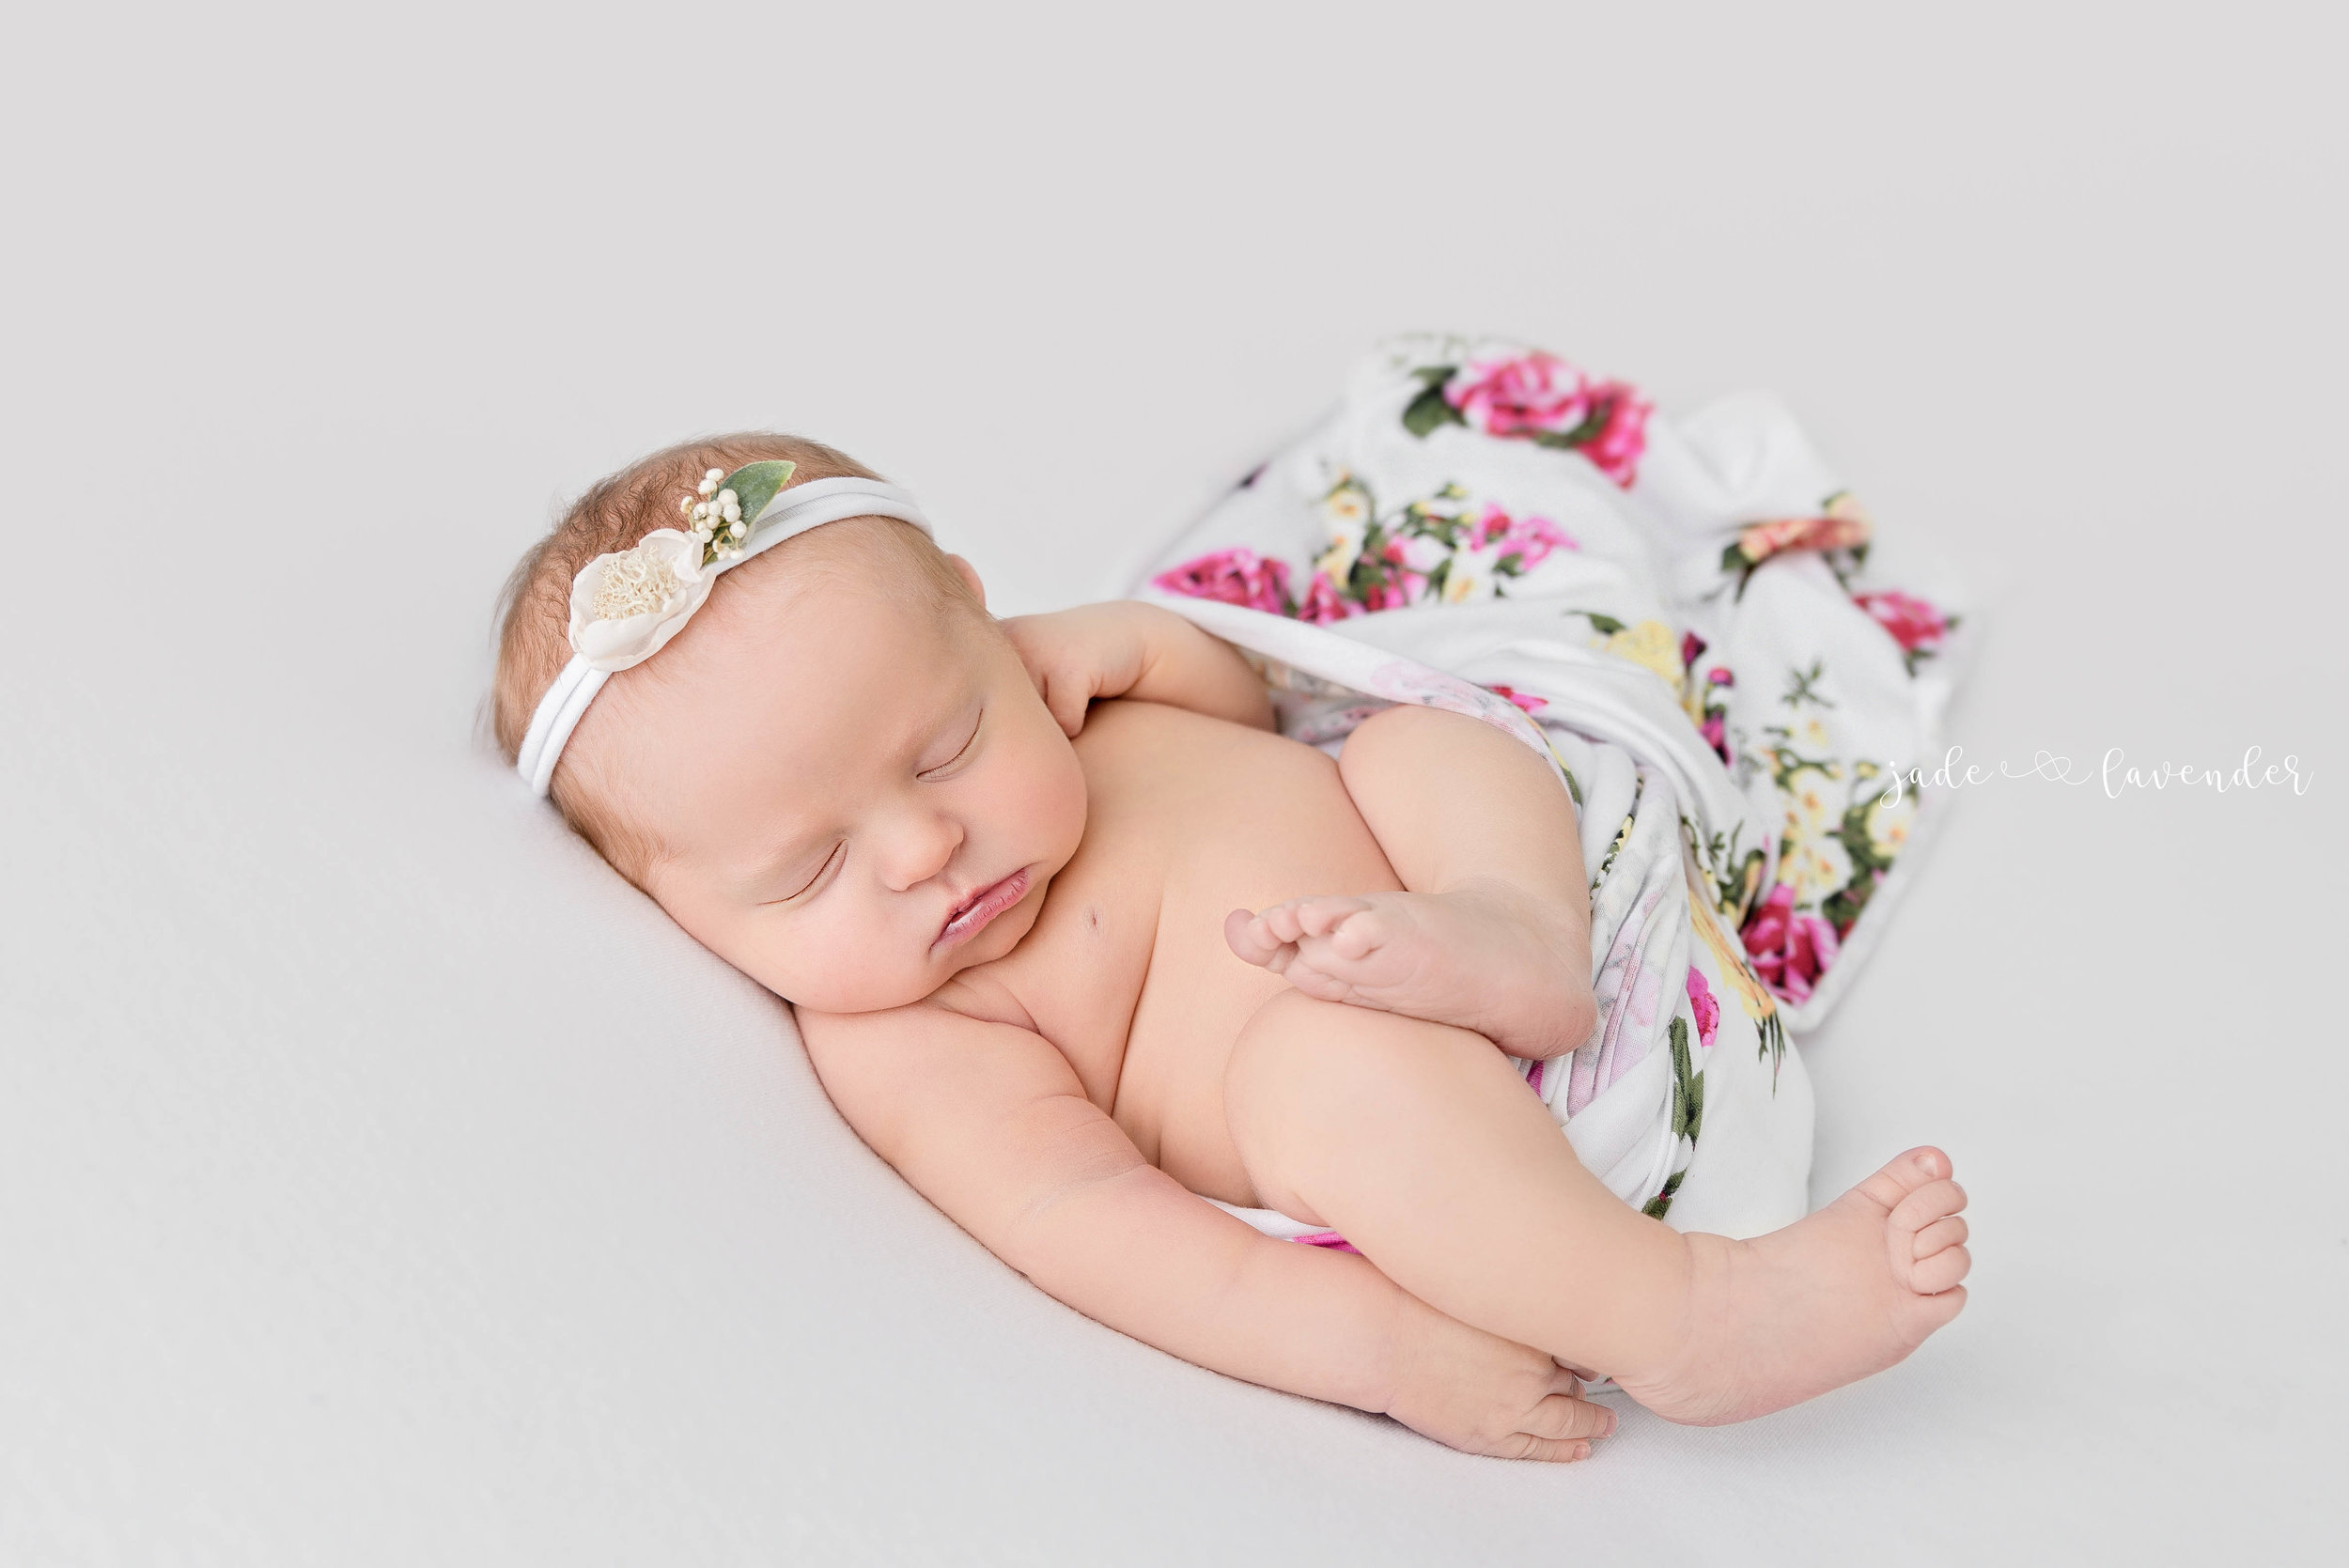 infant-photos-cute-newborn-baby-photoshoot-spokane-washington.jpg